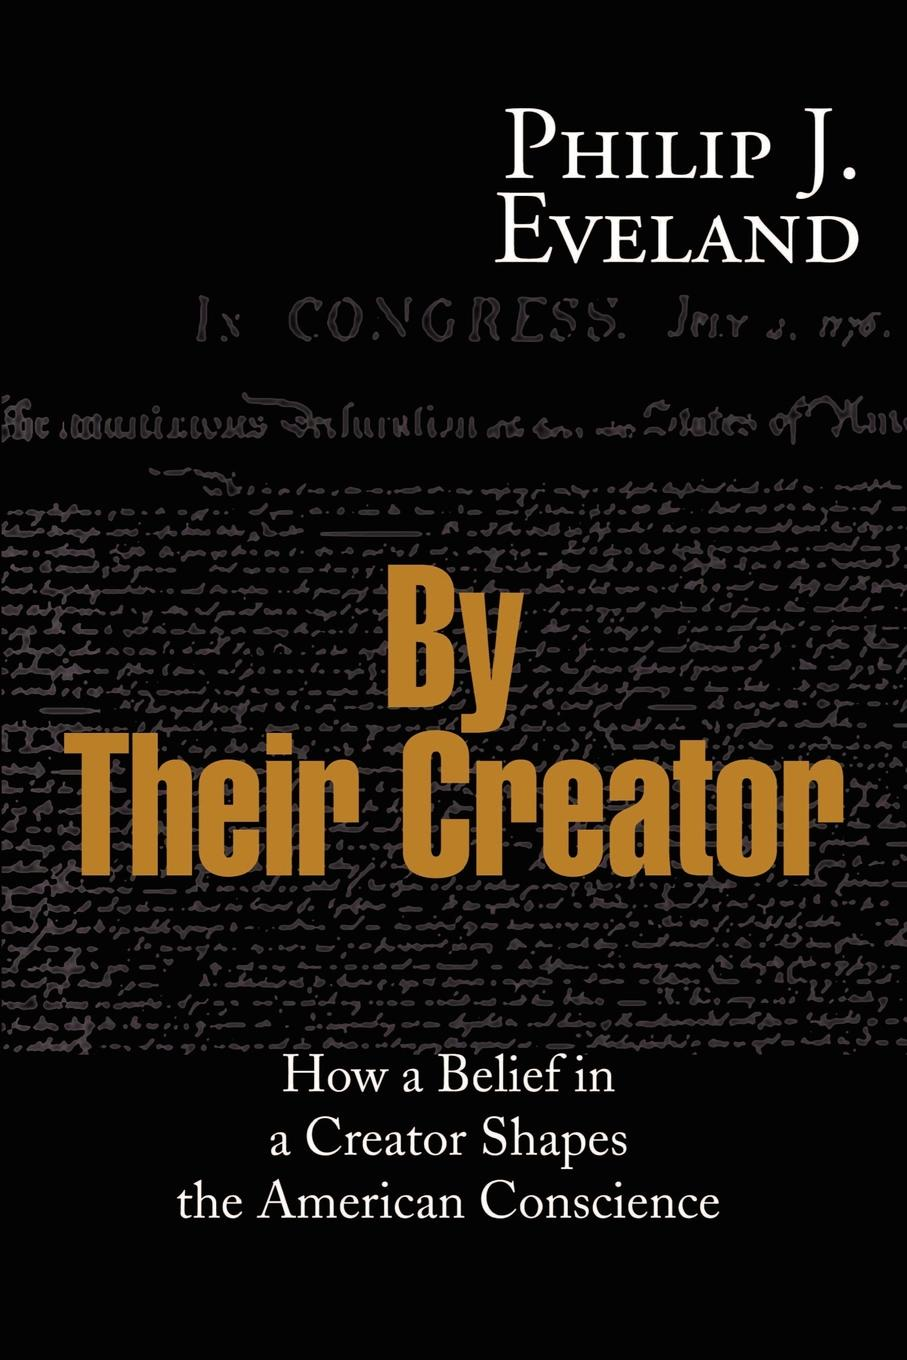 Philip J. Eveland By Their Creator. How a Belief in a Creator Shapes the American Conscience creator pro